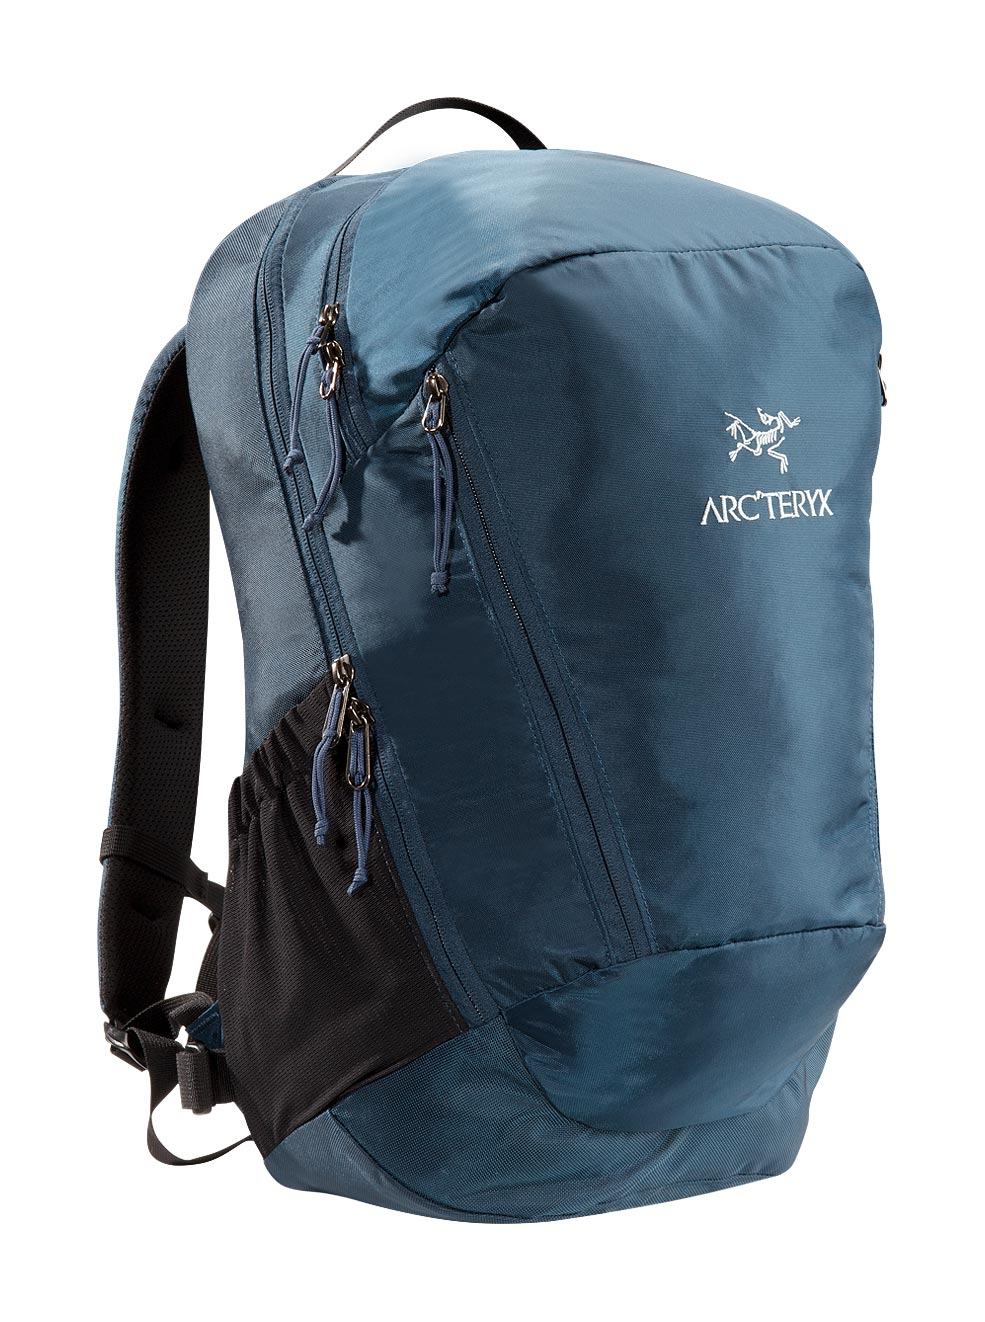 Arcteryx Blue Moon Mantis 27